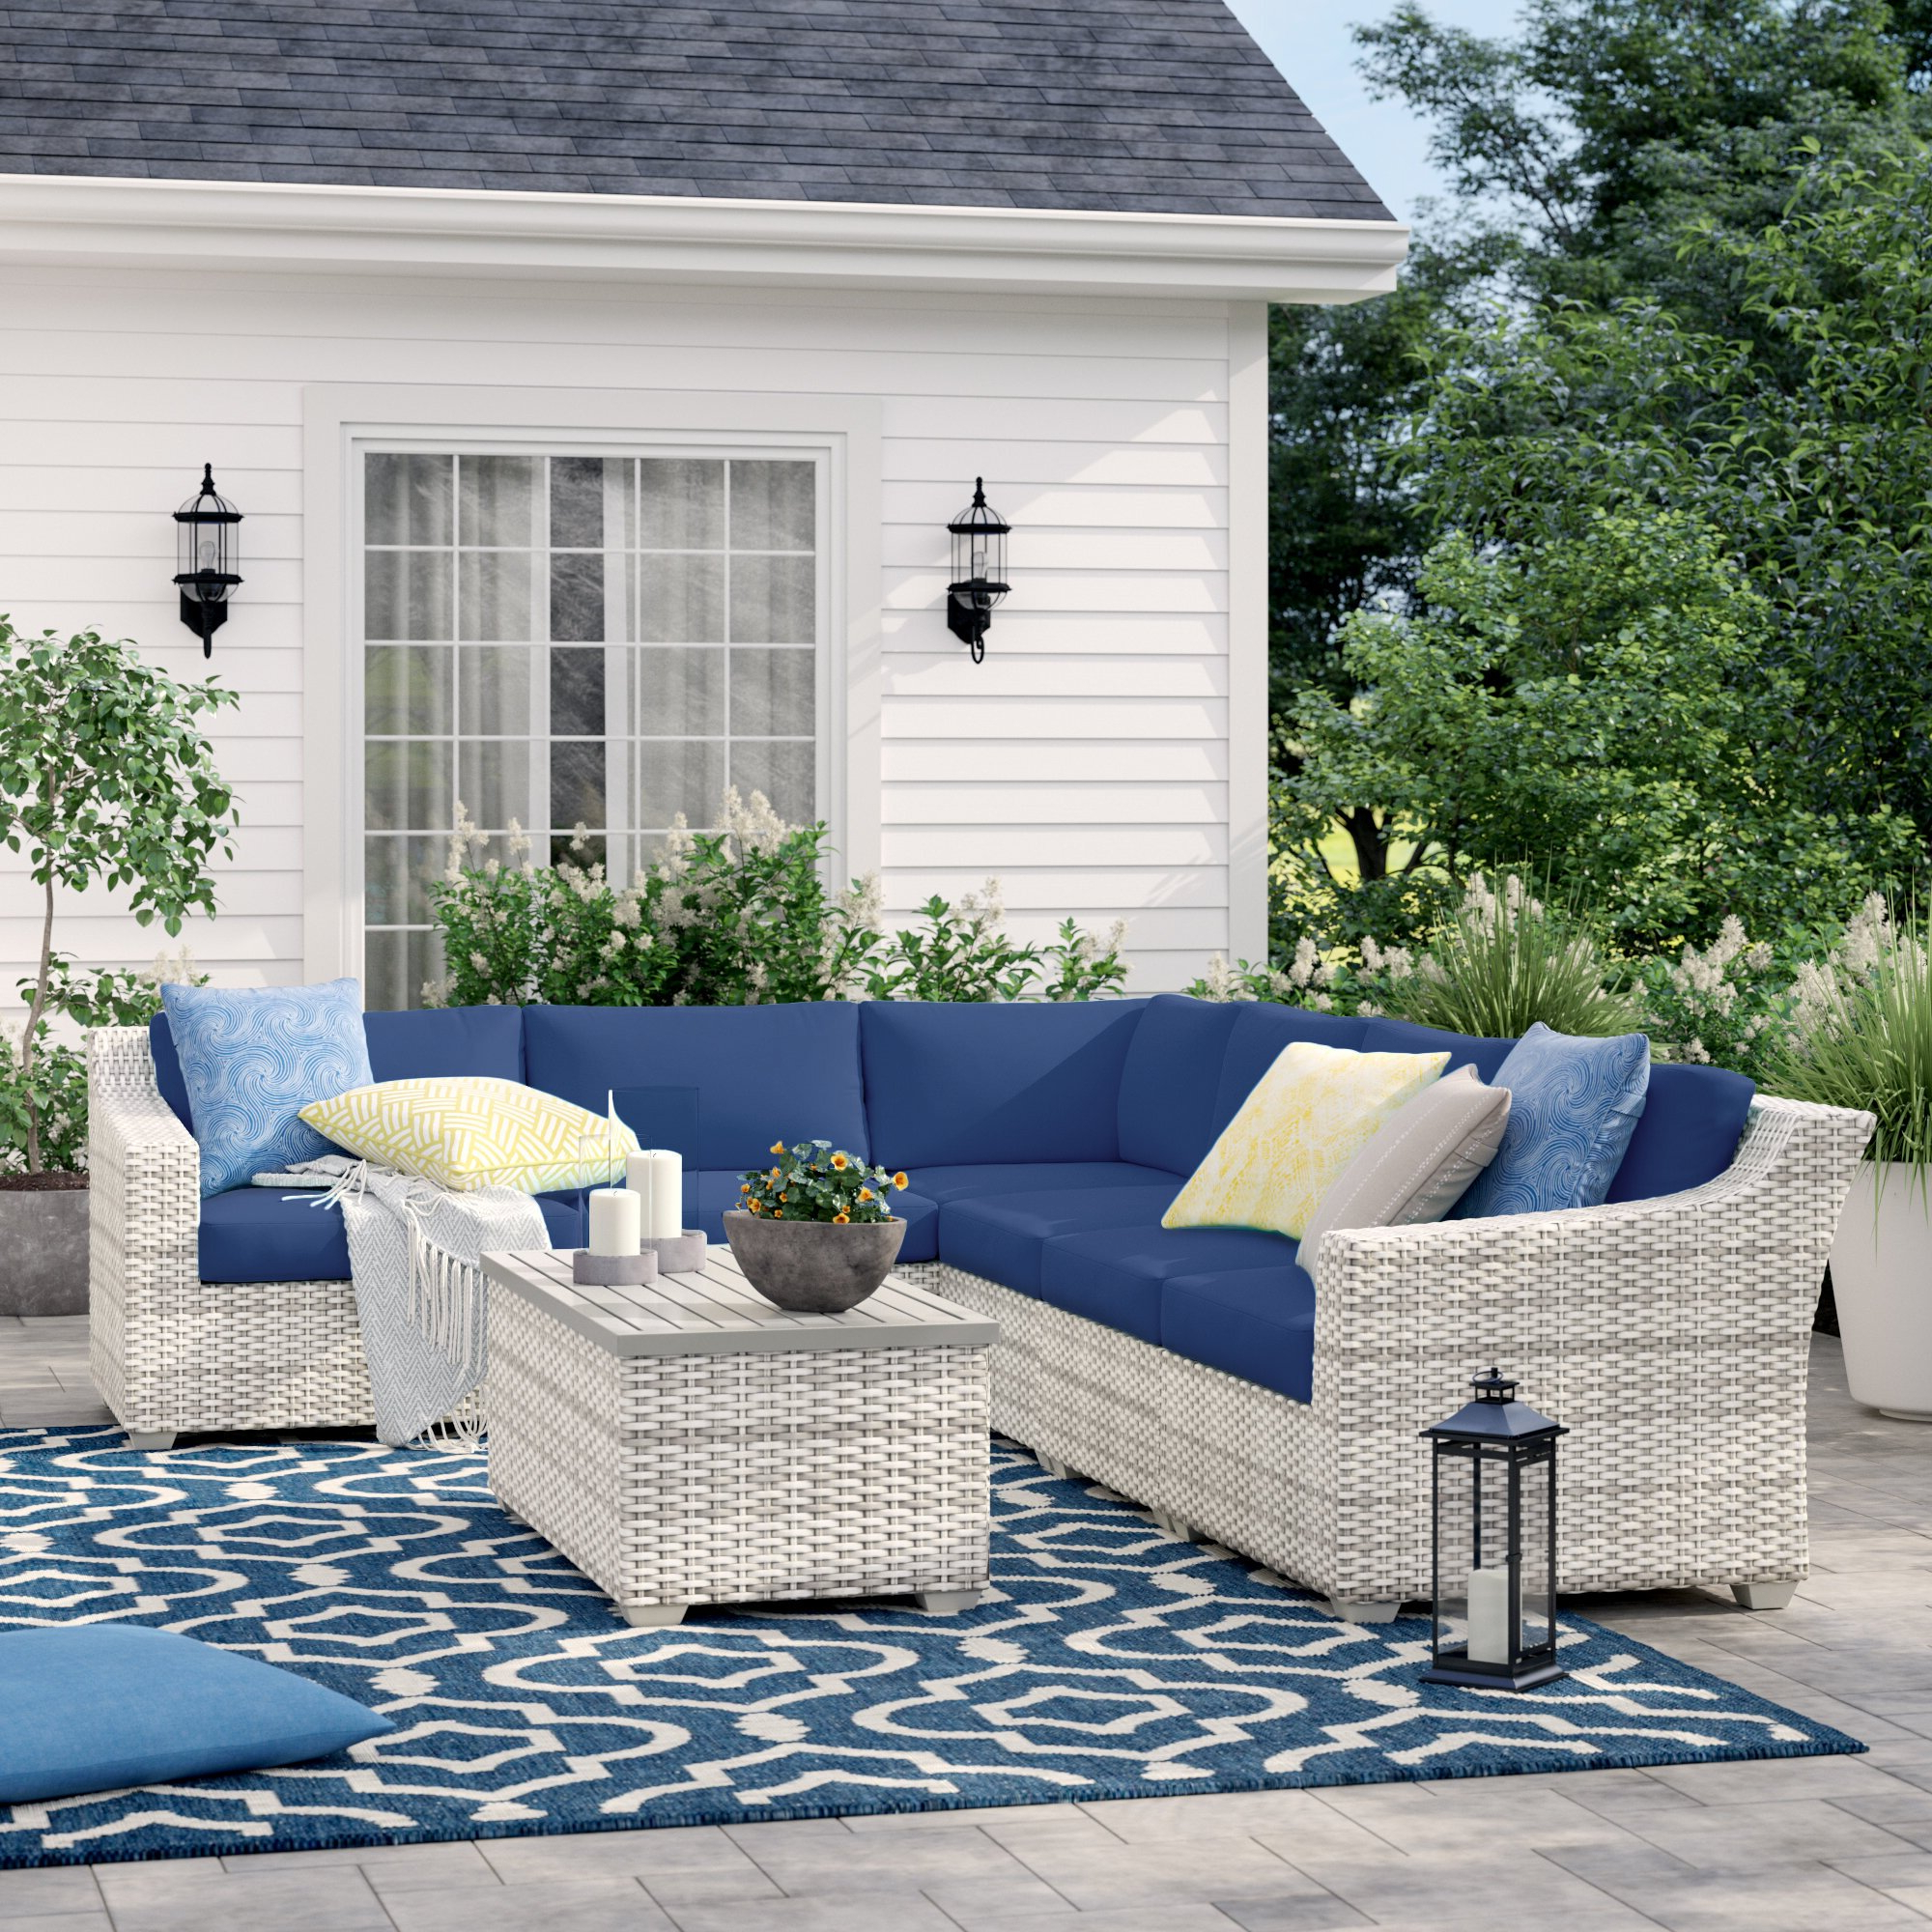 Falmouth Patio Sofas With Cushions Pertaining To Fashionable Falmouth 7 Piece Rattan Sectional Seating Group With Cushions (View 4 of 20)